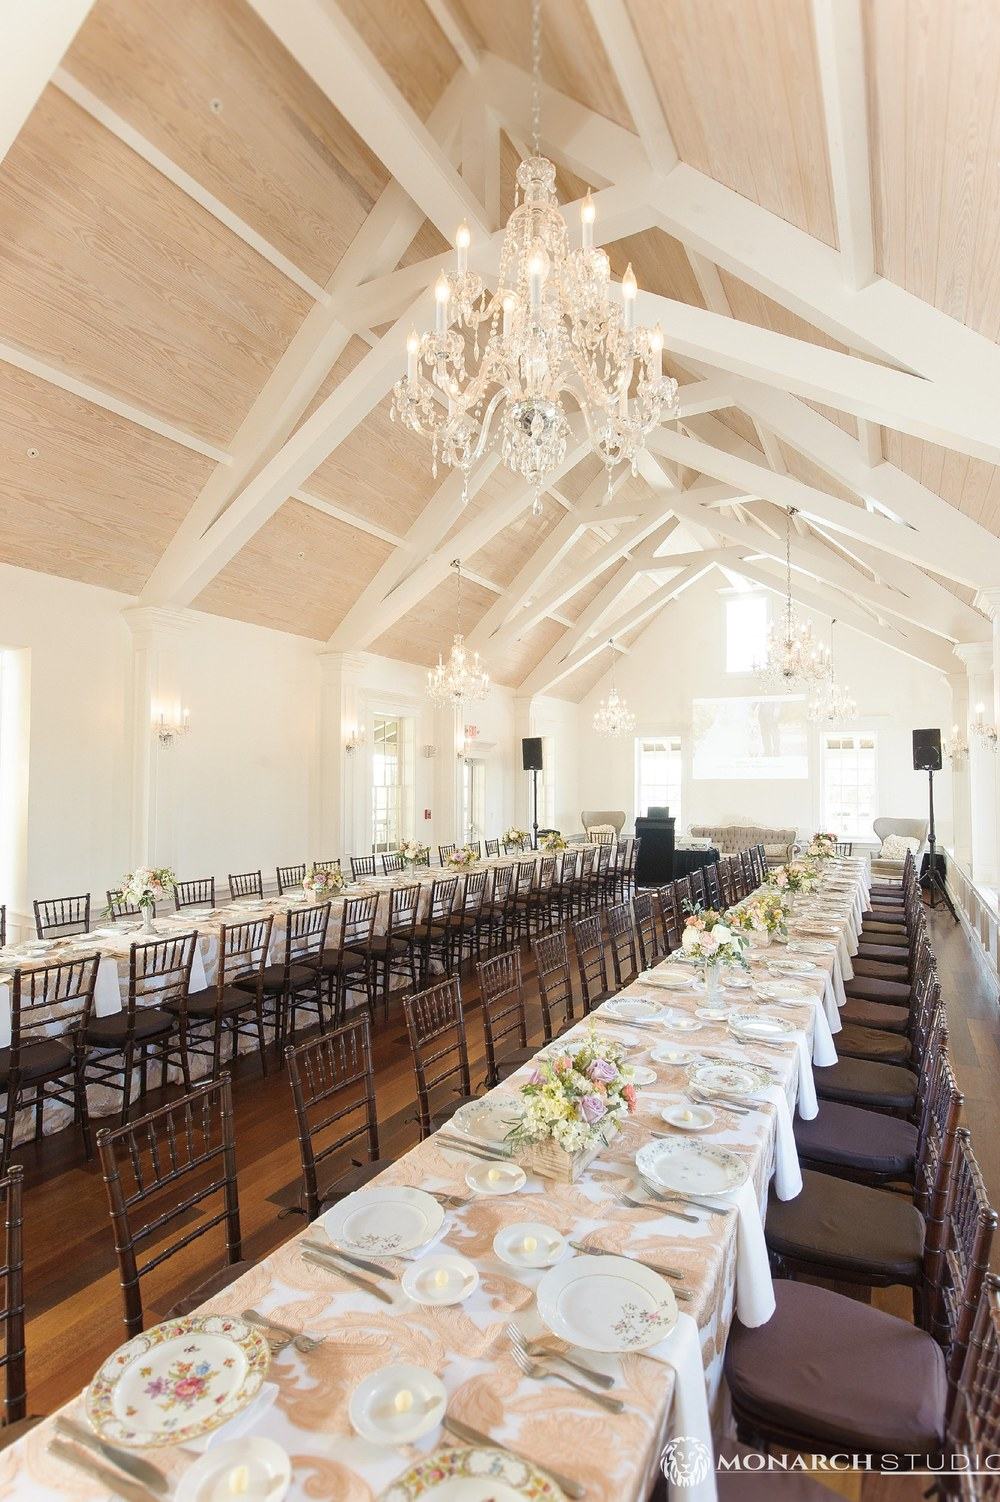 Villa Blanca is one of St. Augustine's top event spaces, available to host a variety of special events.